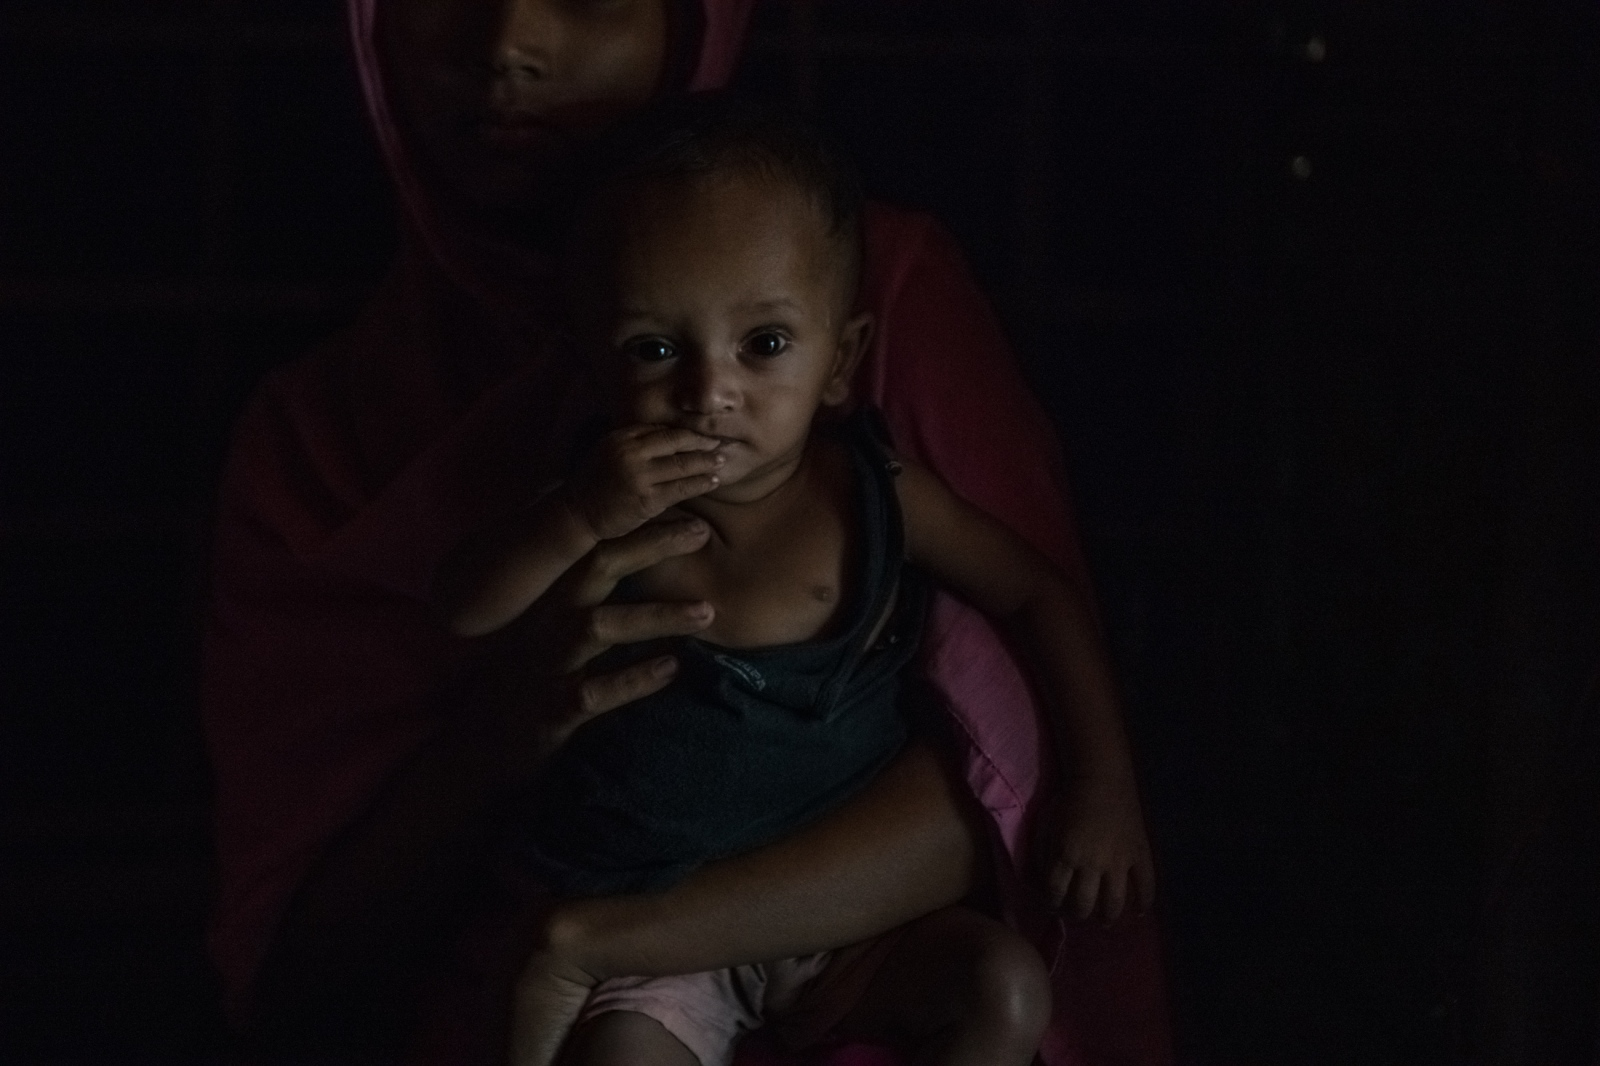 Rohingya refugee Rumana, 17, holds her ten-month-old son Mohammed Tufa, at her home in Kutupalong refugee camp. Rumana fell pregnant after being raped in Myanmar, and terminated her pregnancy